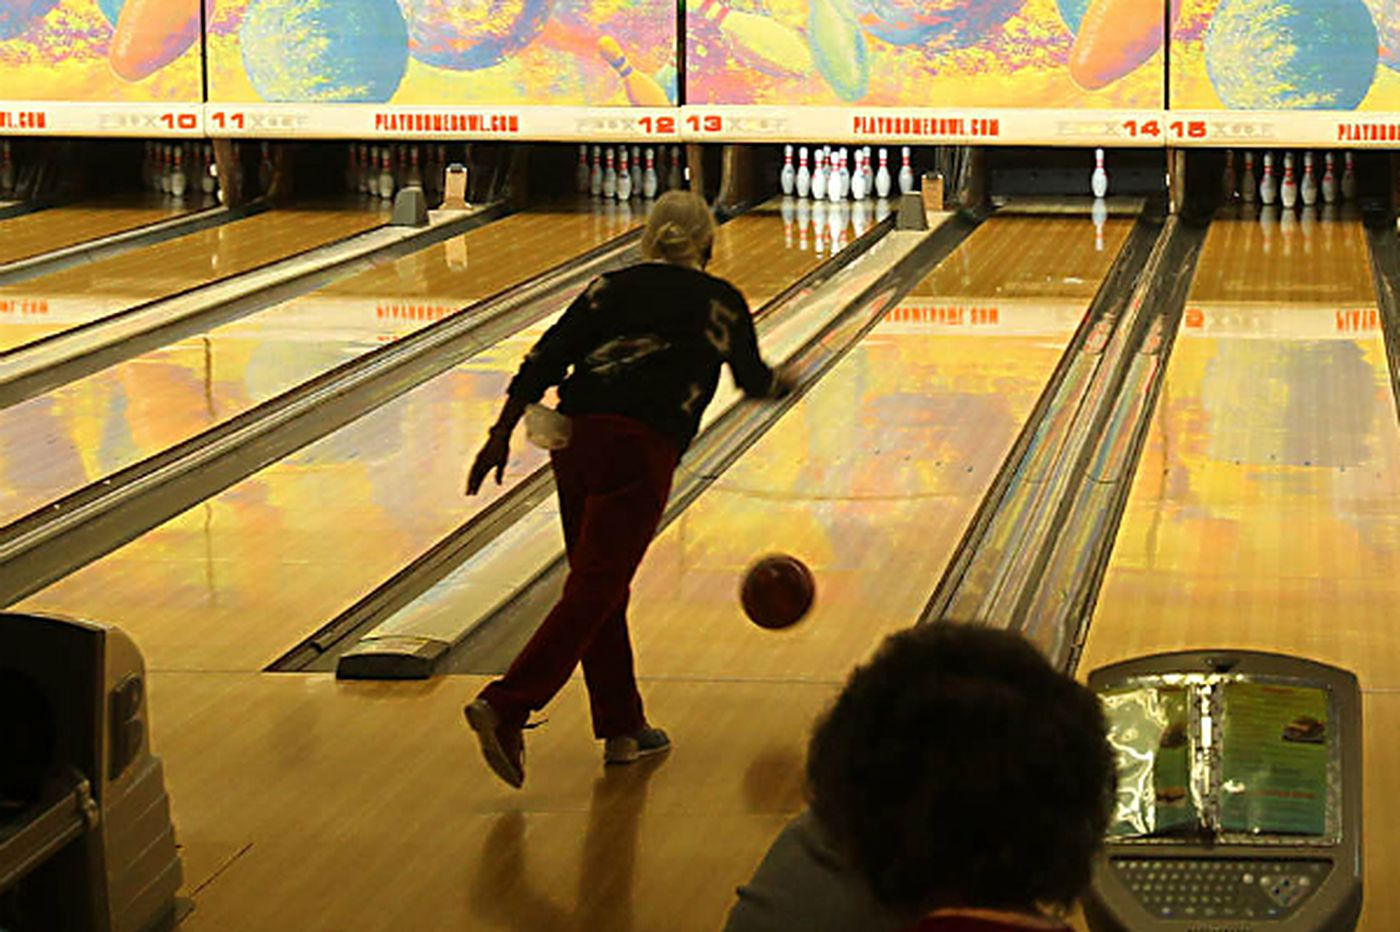 Frank's Place: Lamenting the decline in bowling as a societal glue